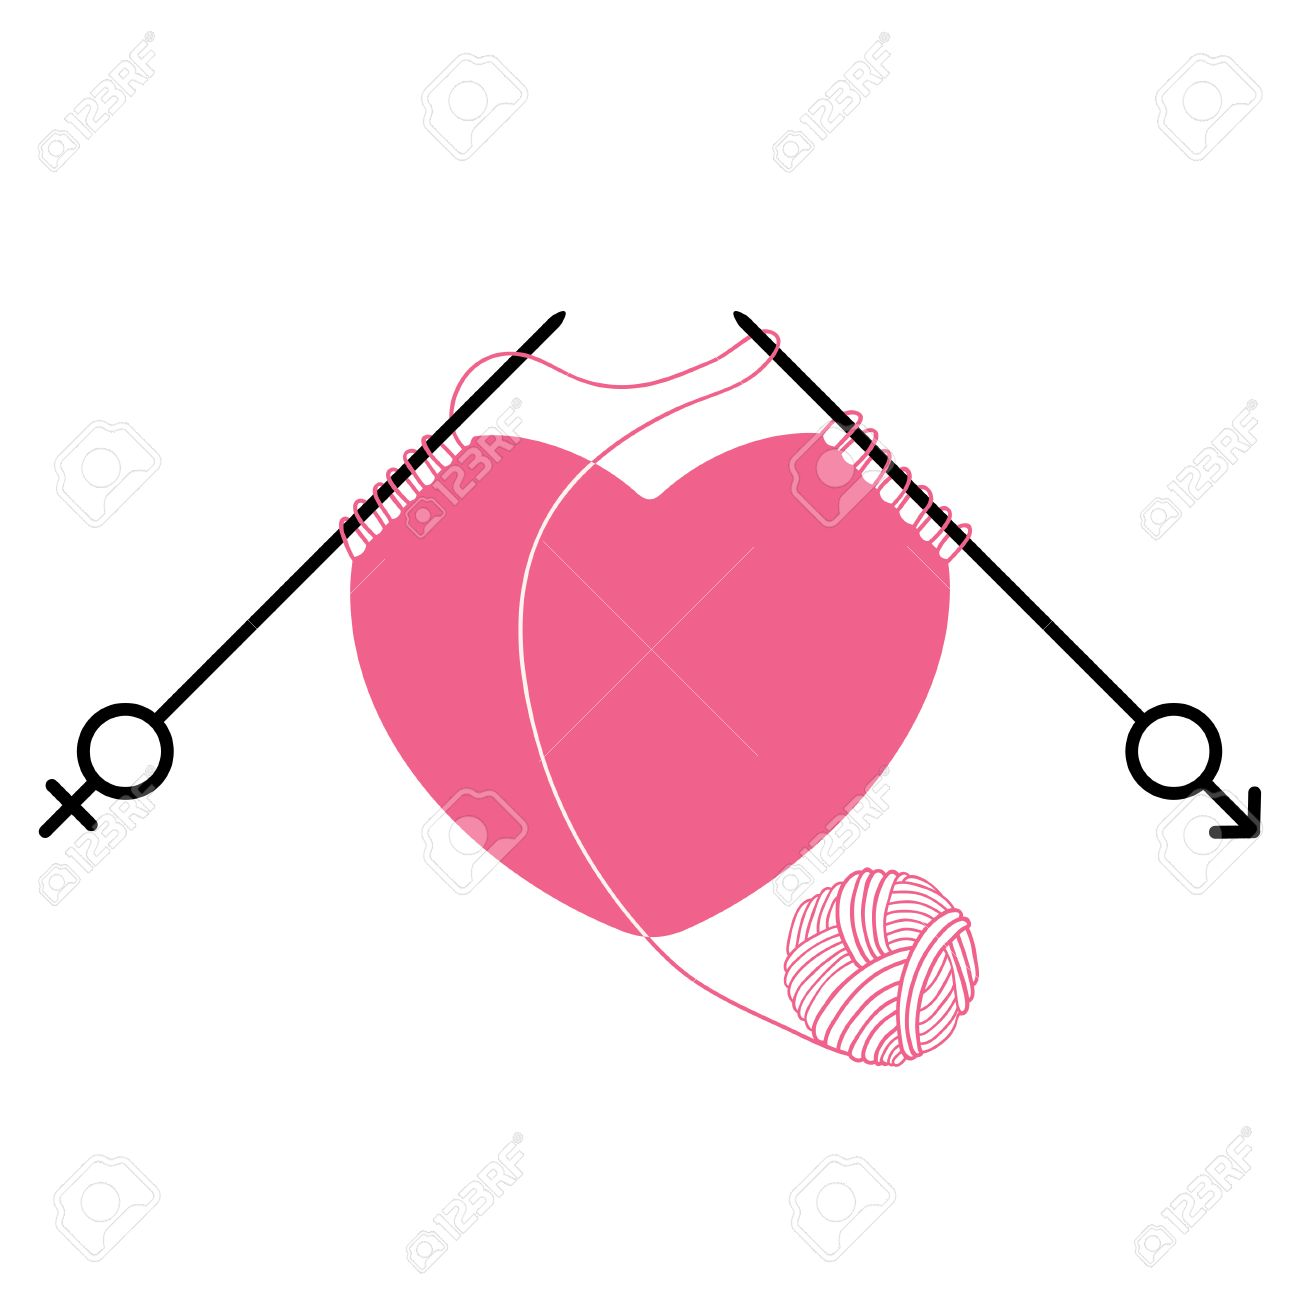 Pink heart and knitting needles with gender symbol isolated on pink heart and knitting needles with gender symbol isolated on white background concept of relations buycottarizona